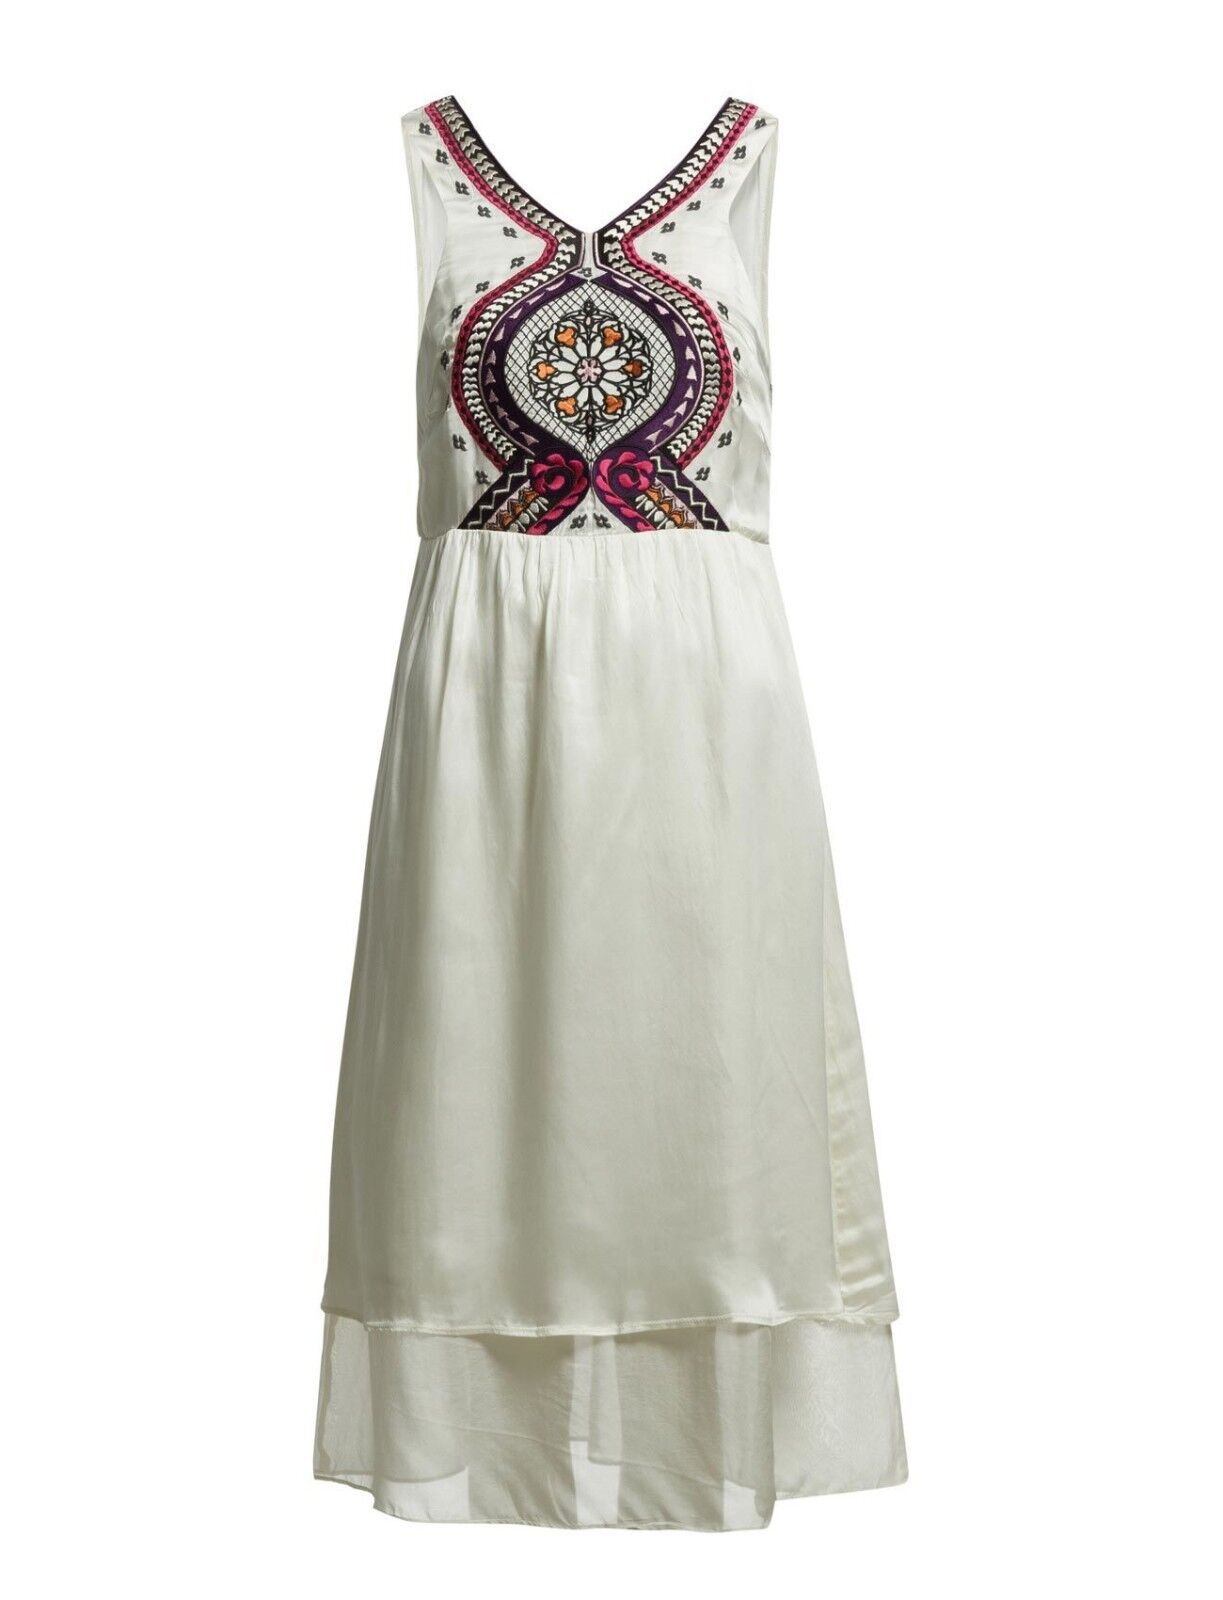 New Odd Molly Old Old Old Town Moments Lite Porcelain Dress 1 dfc307